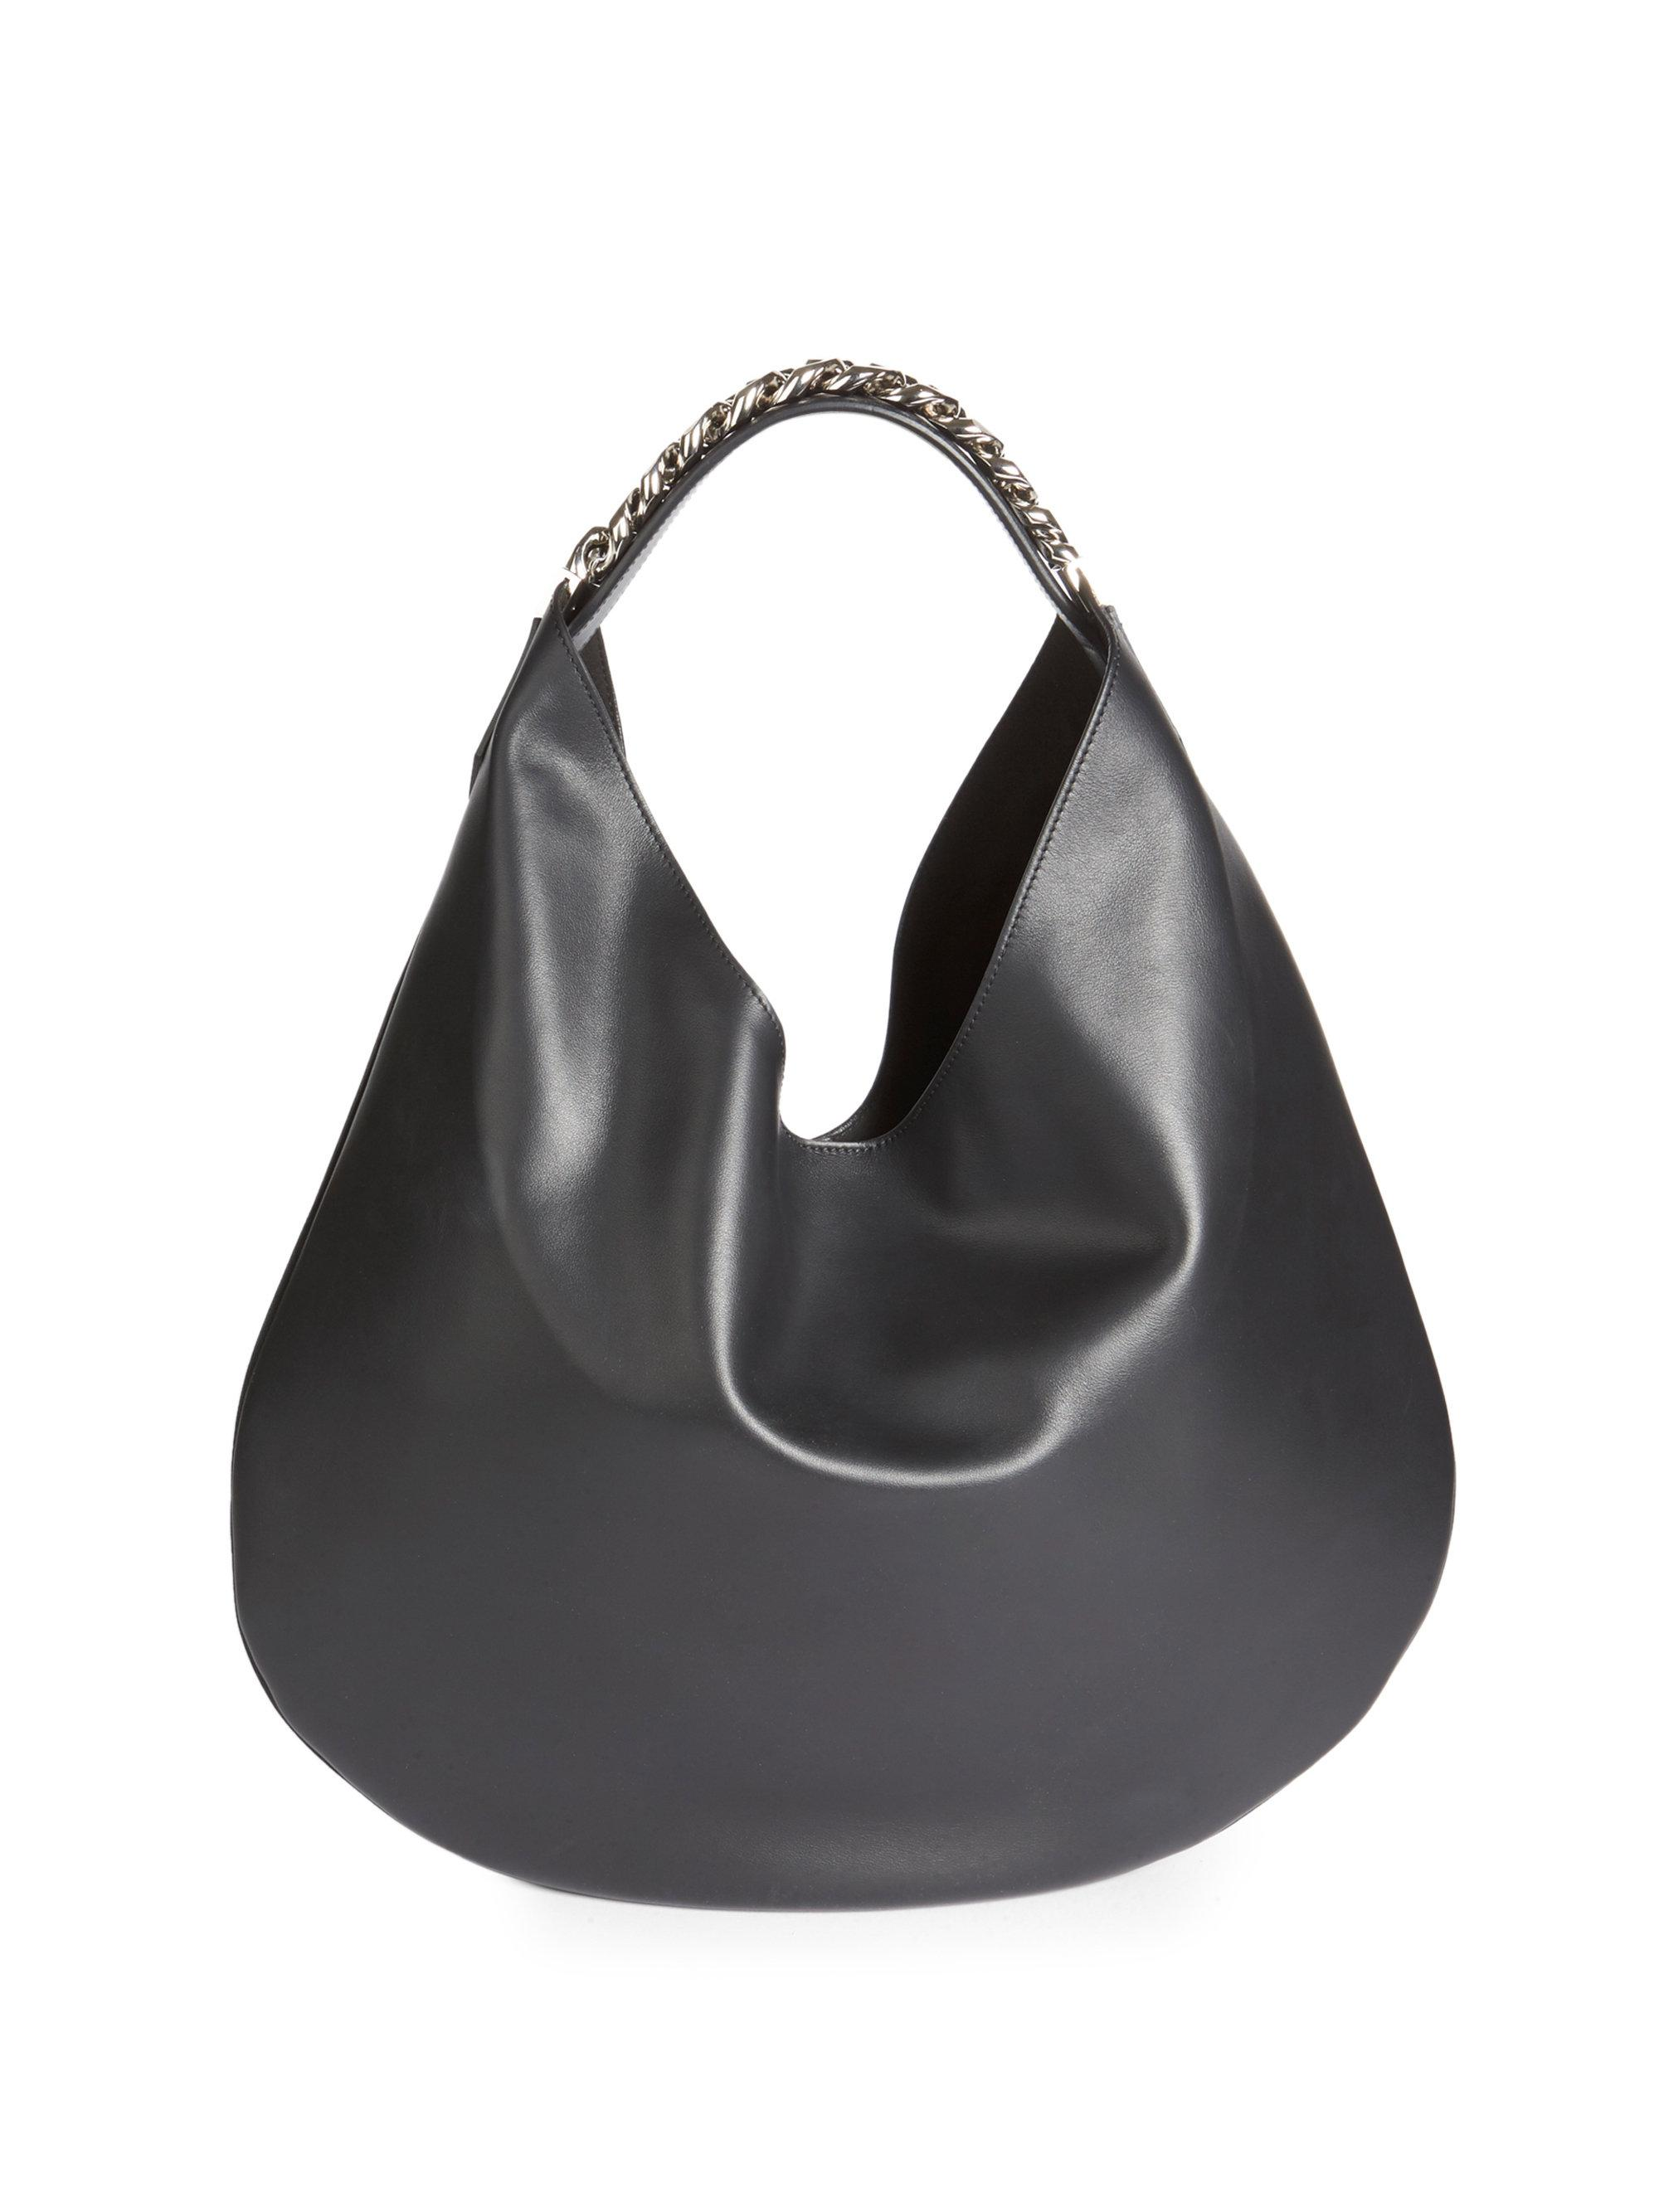 Lyst - Givenchy Infinity Small Leather Hobo Bag in Black 0b4fbb95c7b71